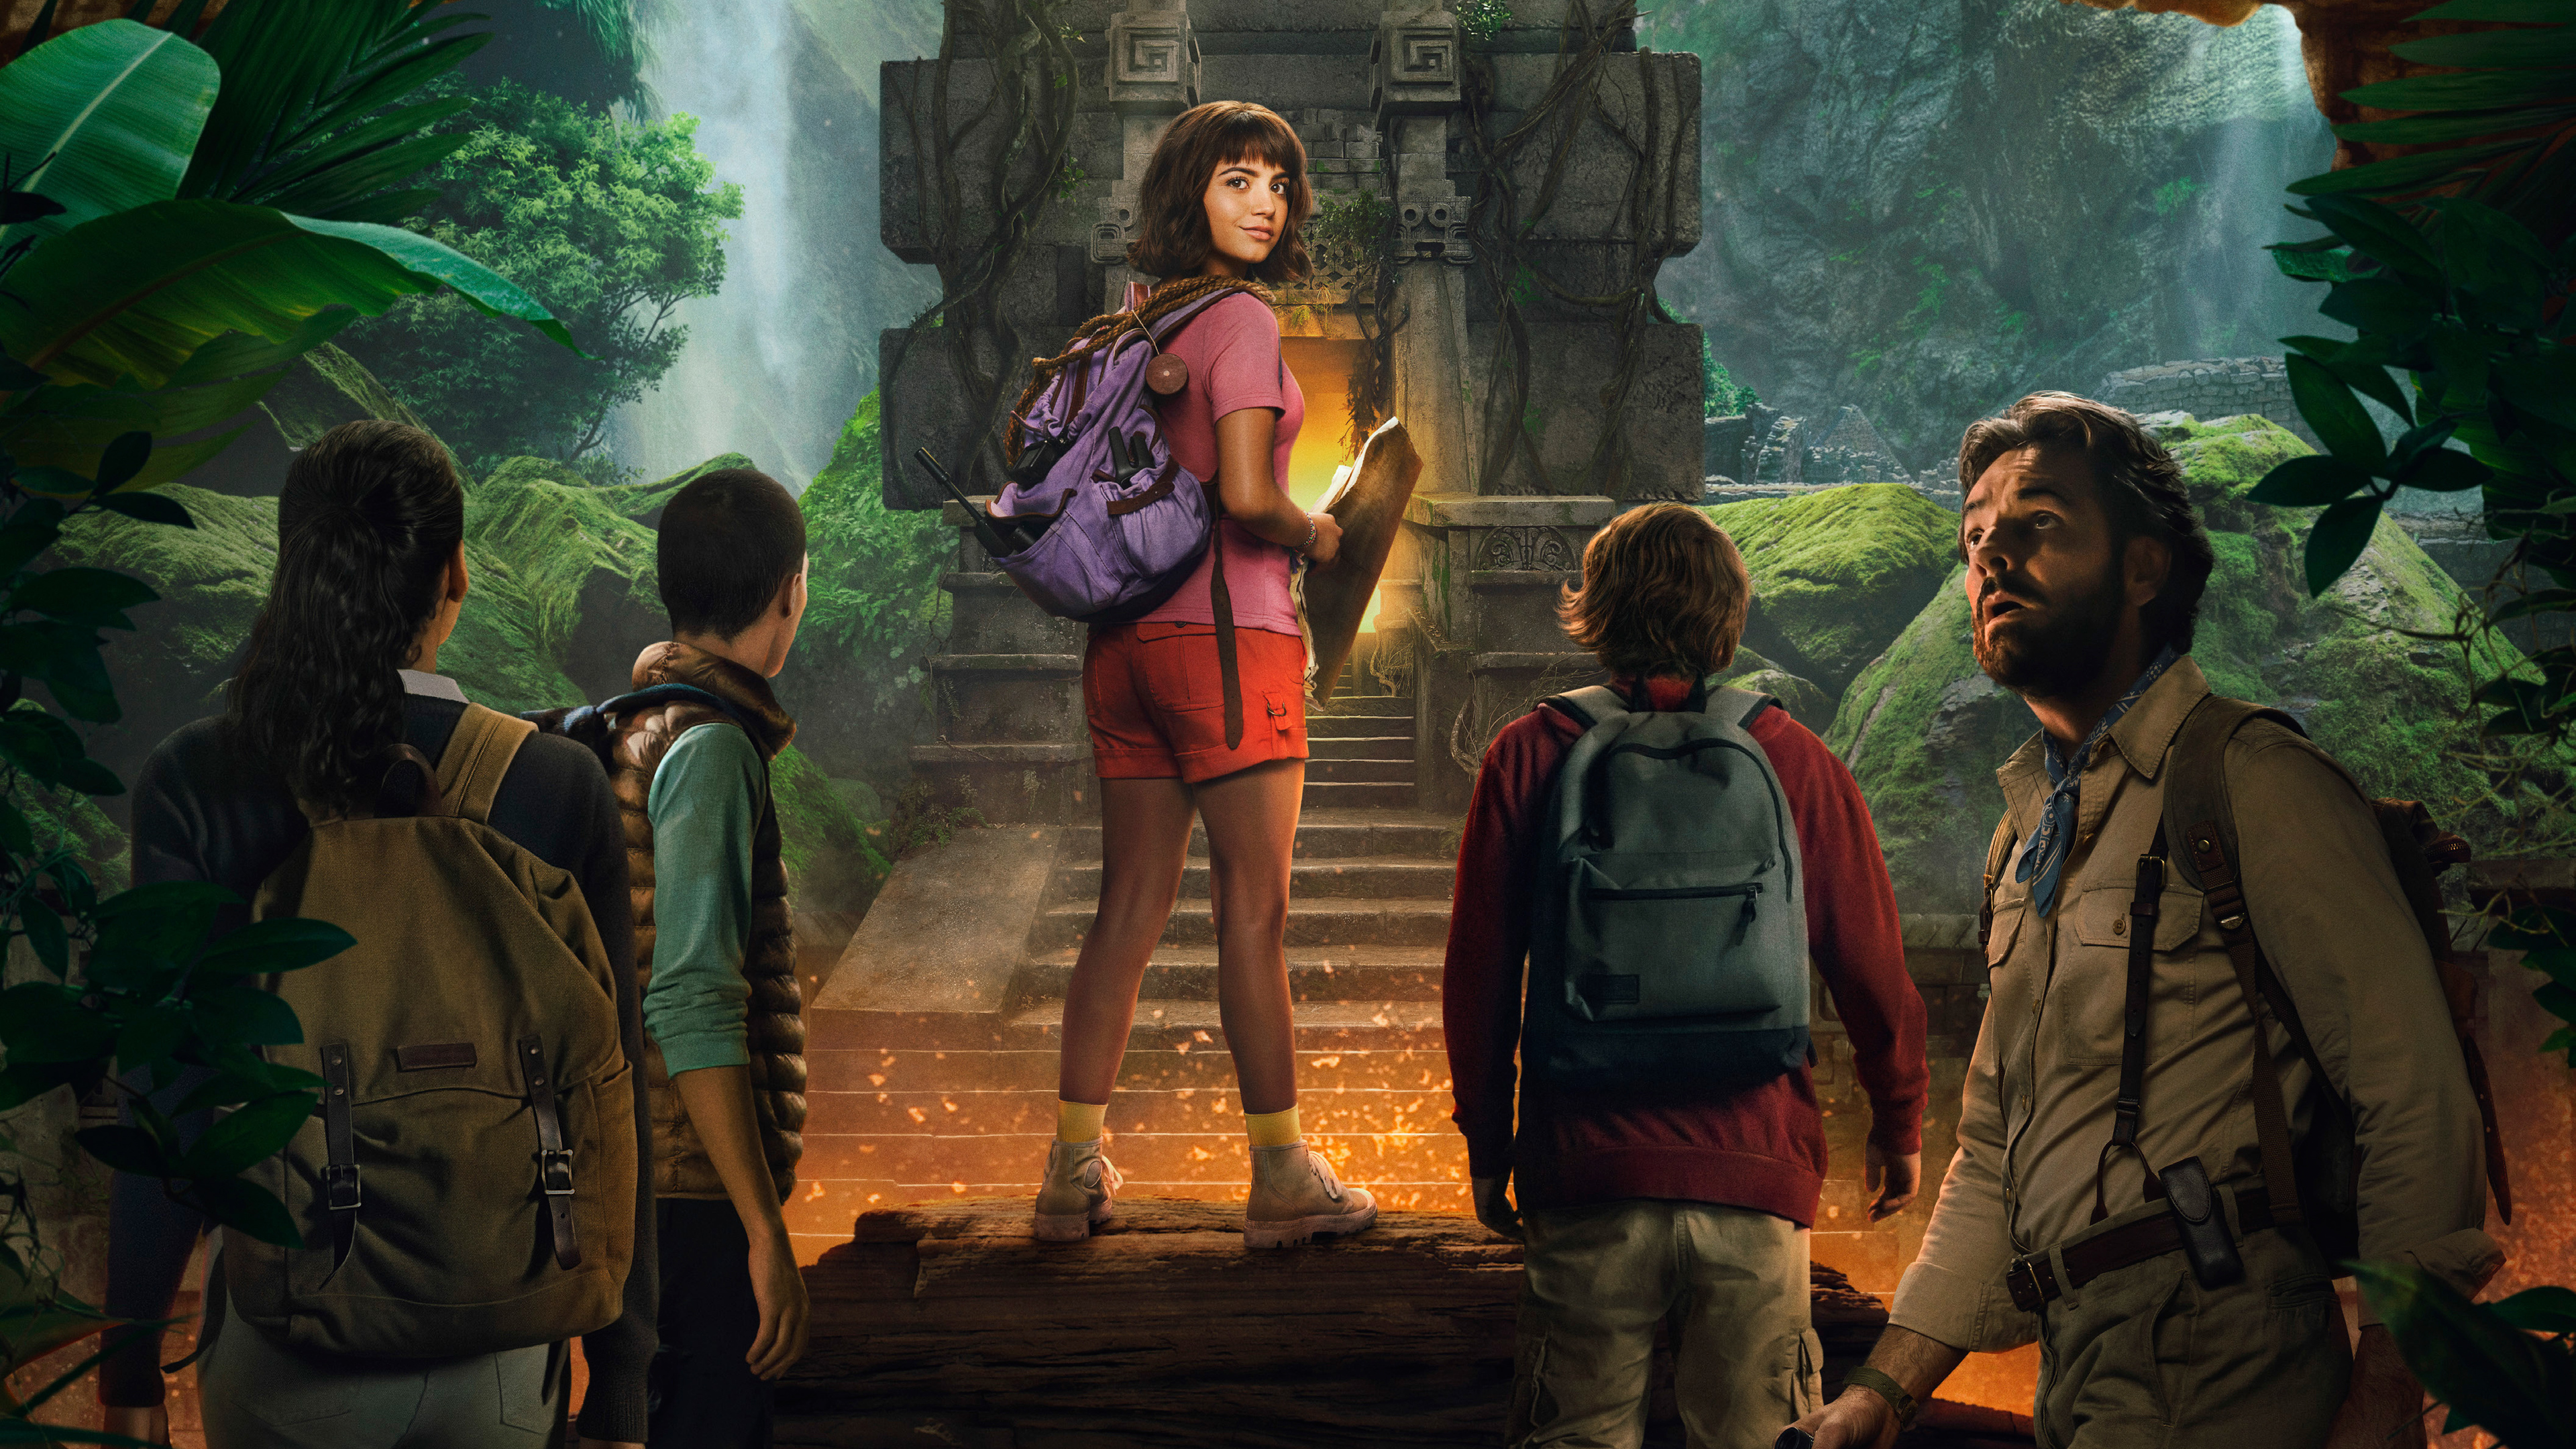 dora and the lost city of gold 2019 4k 1555208586 - Dora And The Lost City Of Gold 2019 4k - movies wallpapers, isabela moner wallpapers, hd-wallpapers, dora the explorer wallpapers, dora and the lost city of gold wallpapers, 4k-wallpapers, 2019 movies wallpapers